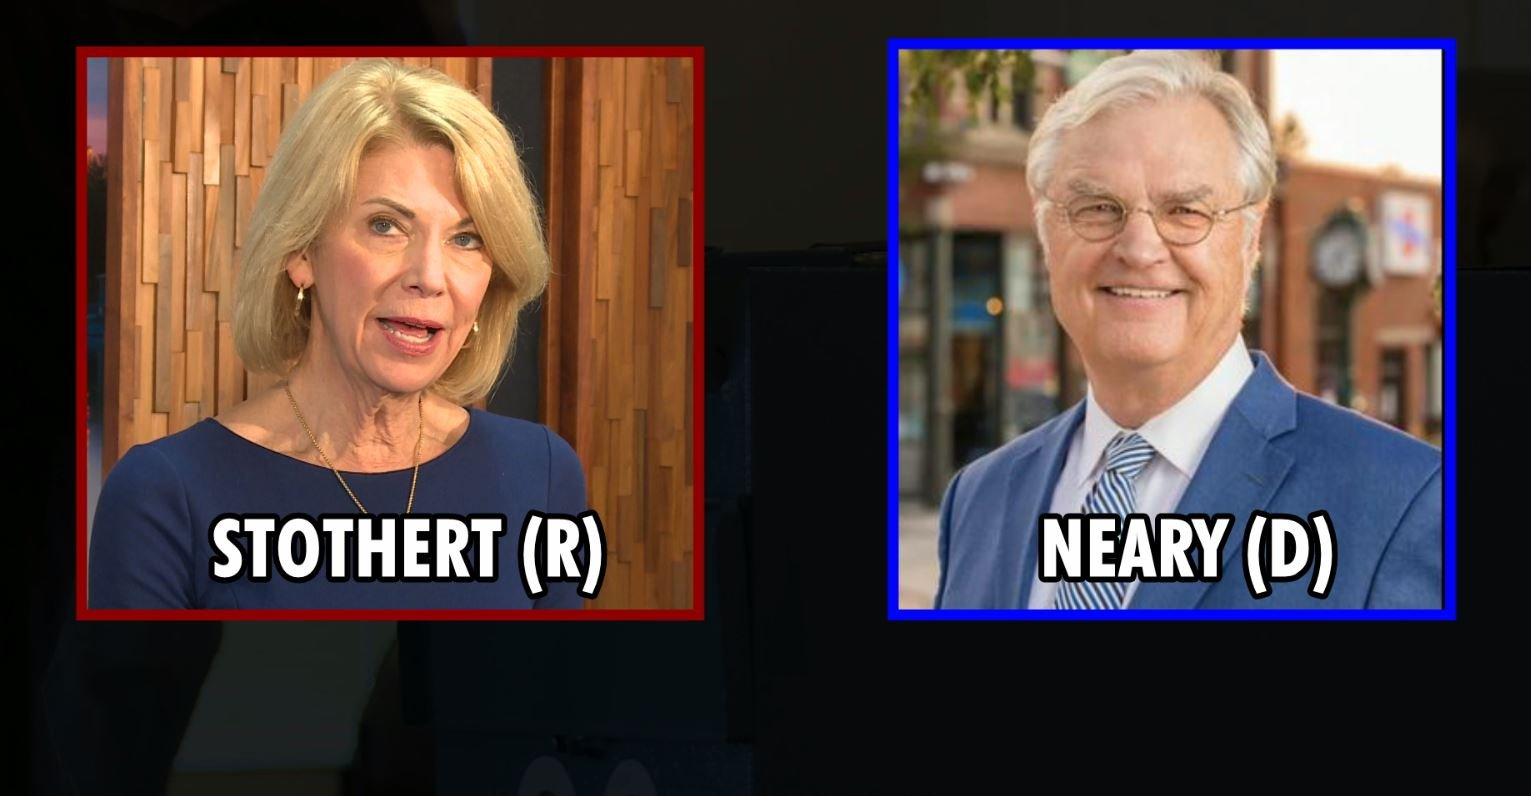 Stothert cruising to re-election